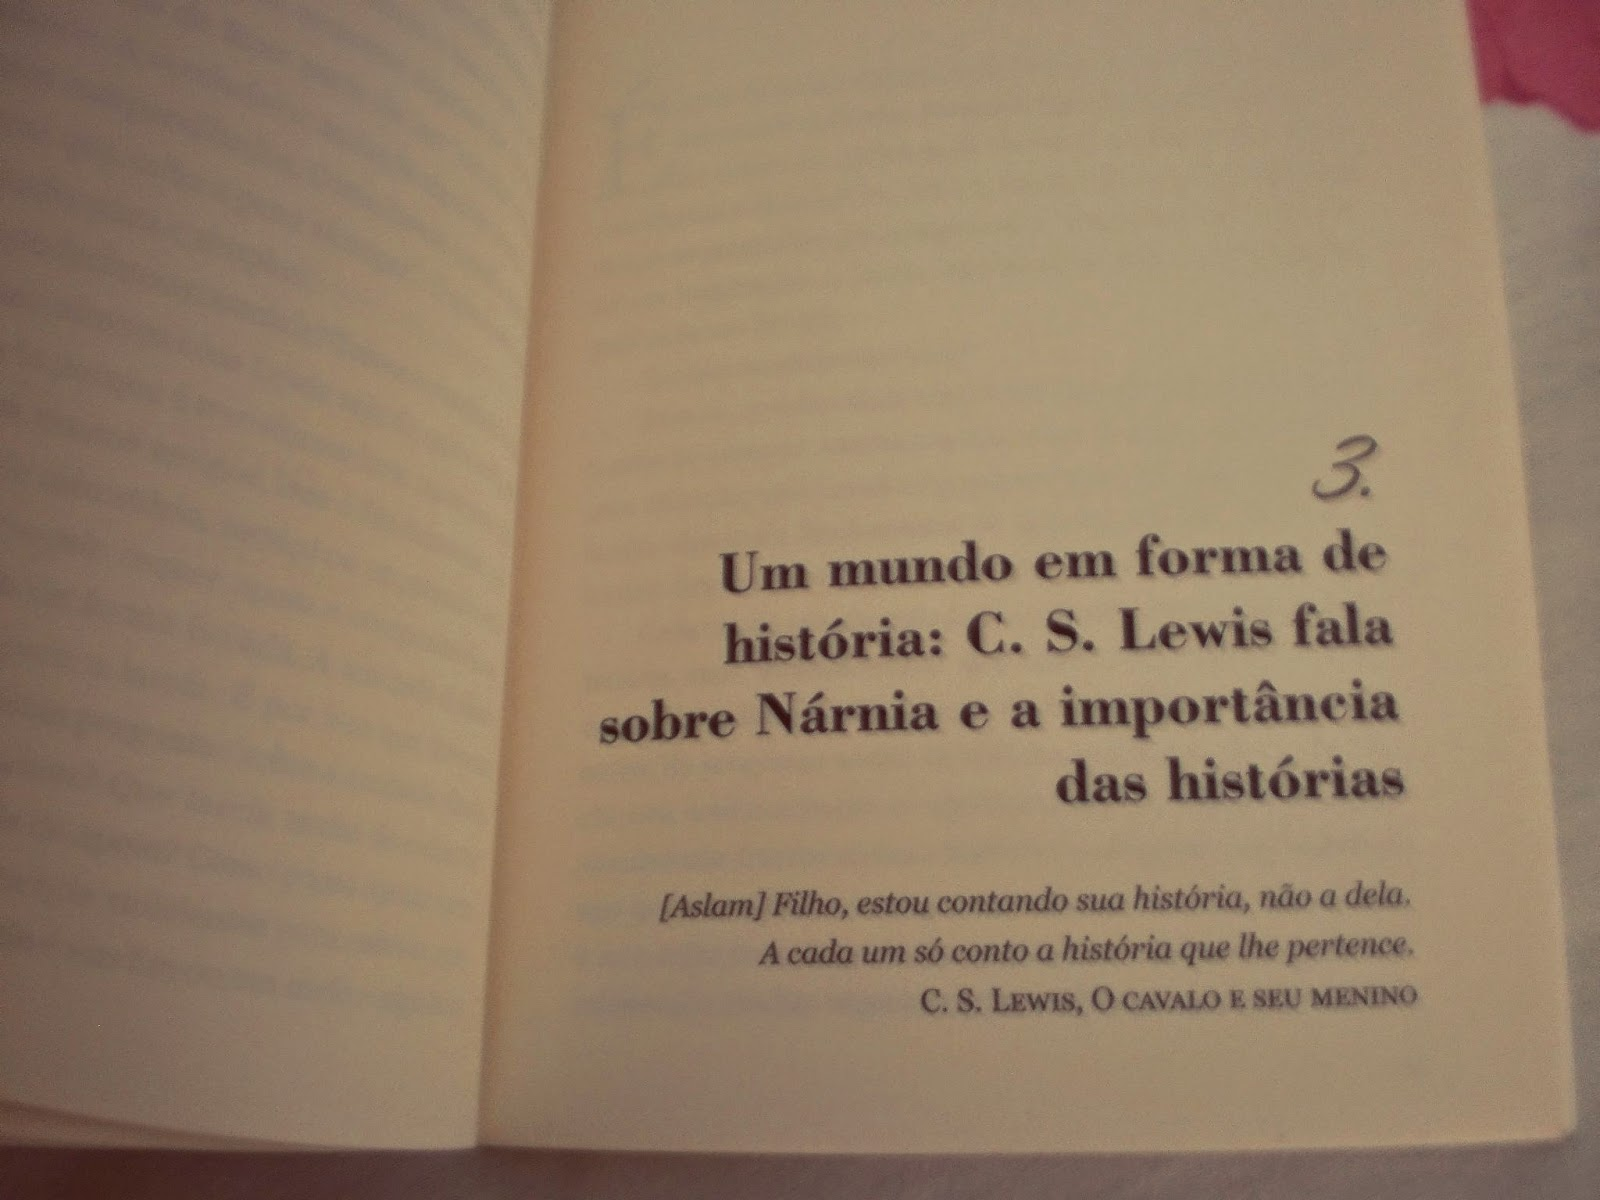 Tag Frases C S Lewis Amizade